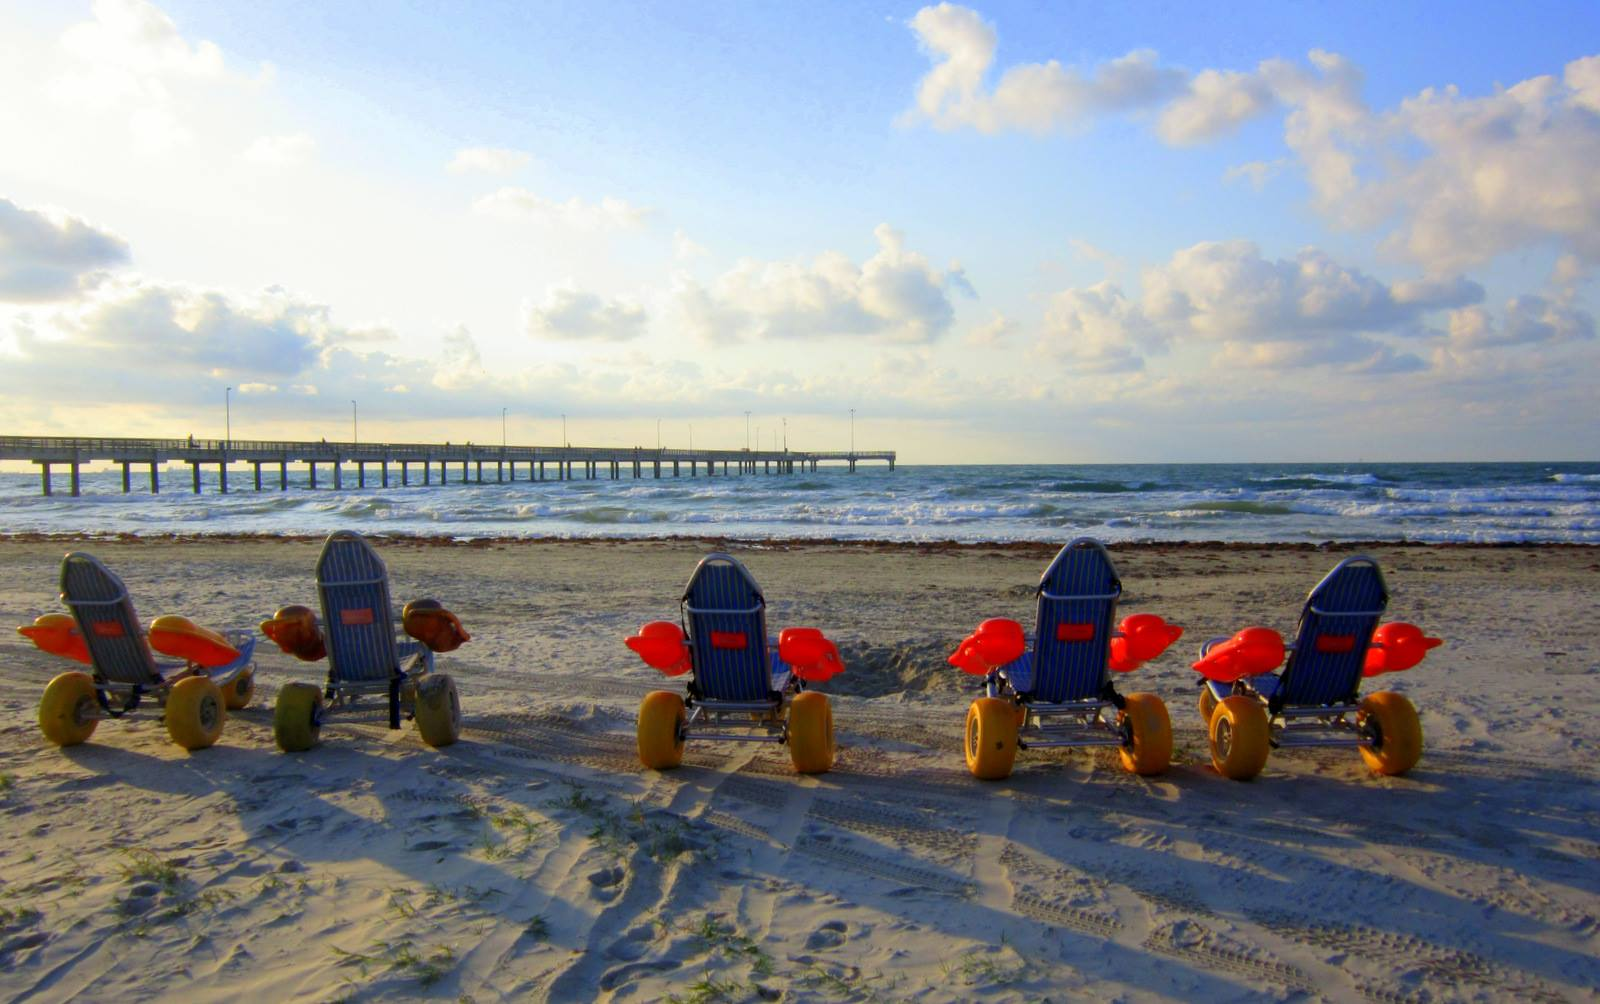 texas beach wheelchairs parked in a row gayla kolle goff.jpg